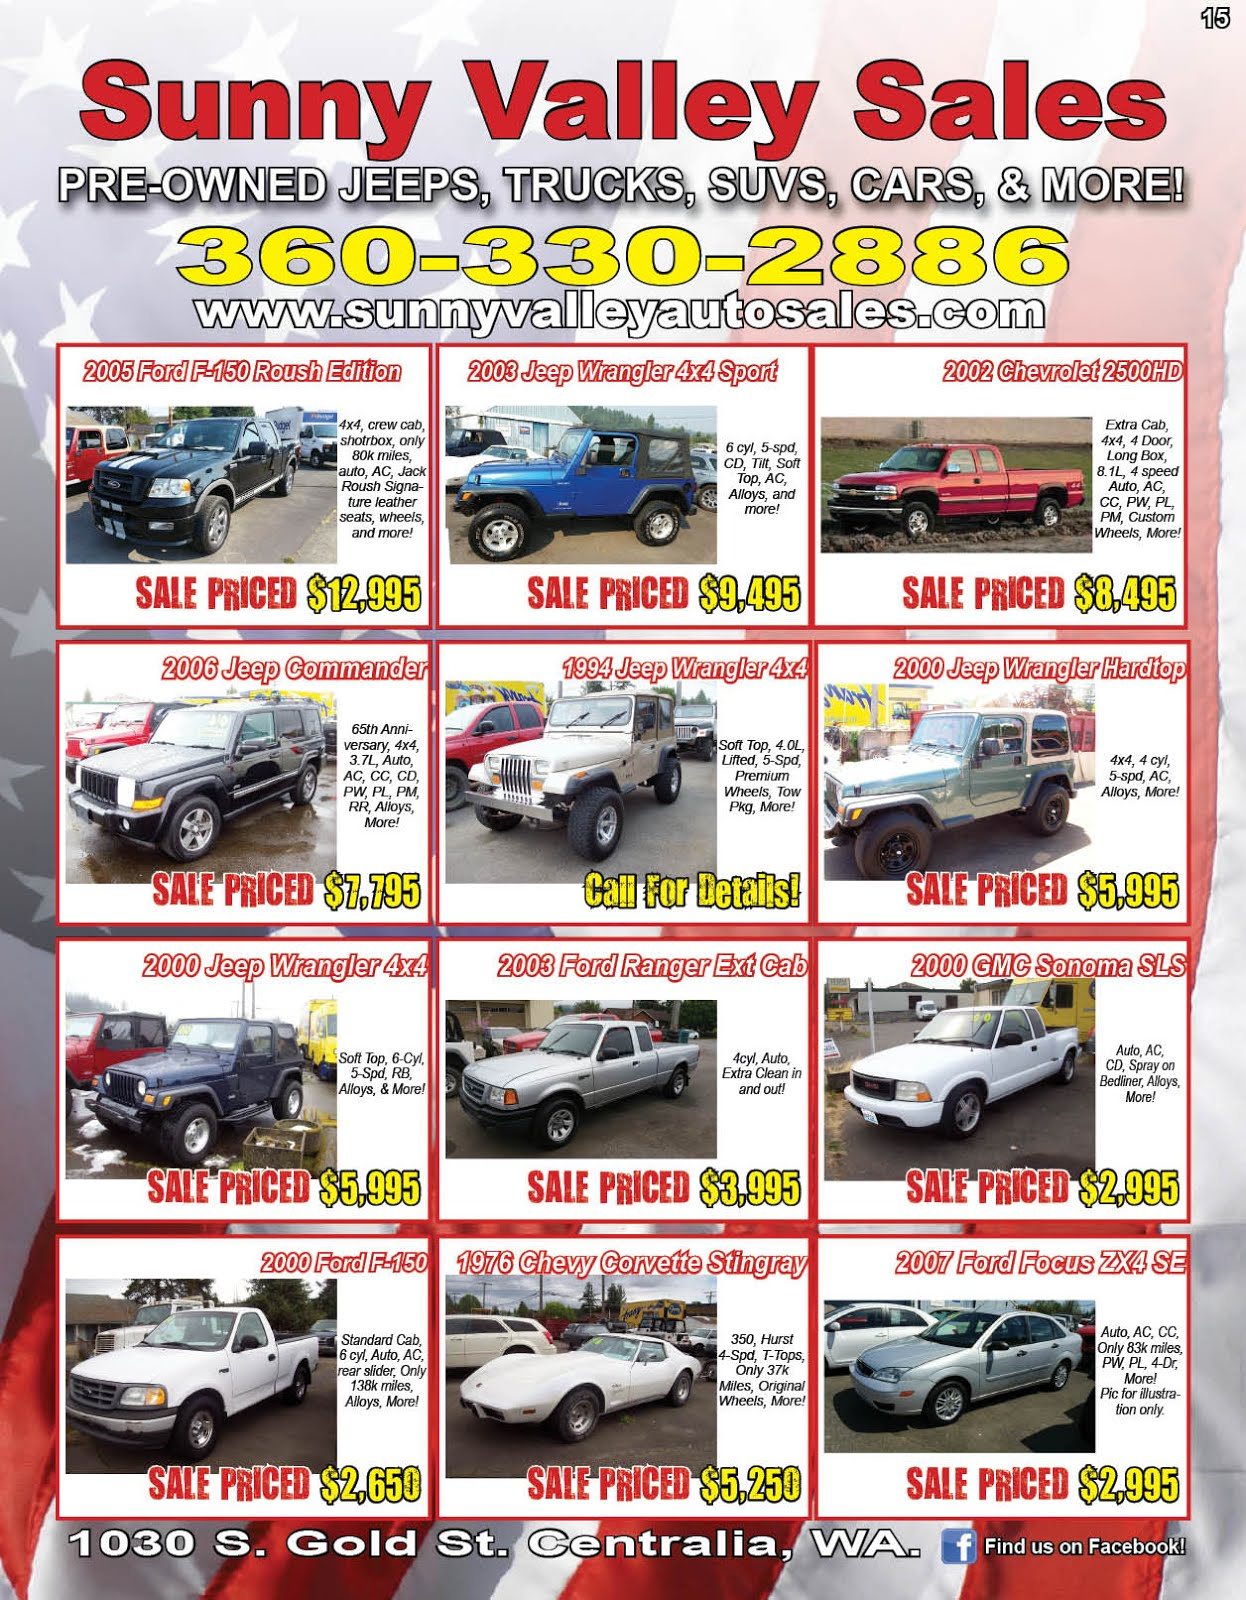 Sunny Valley Sales Used Cars & Trucks